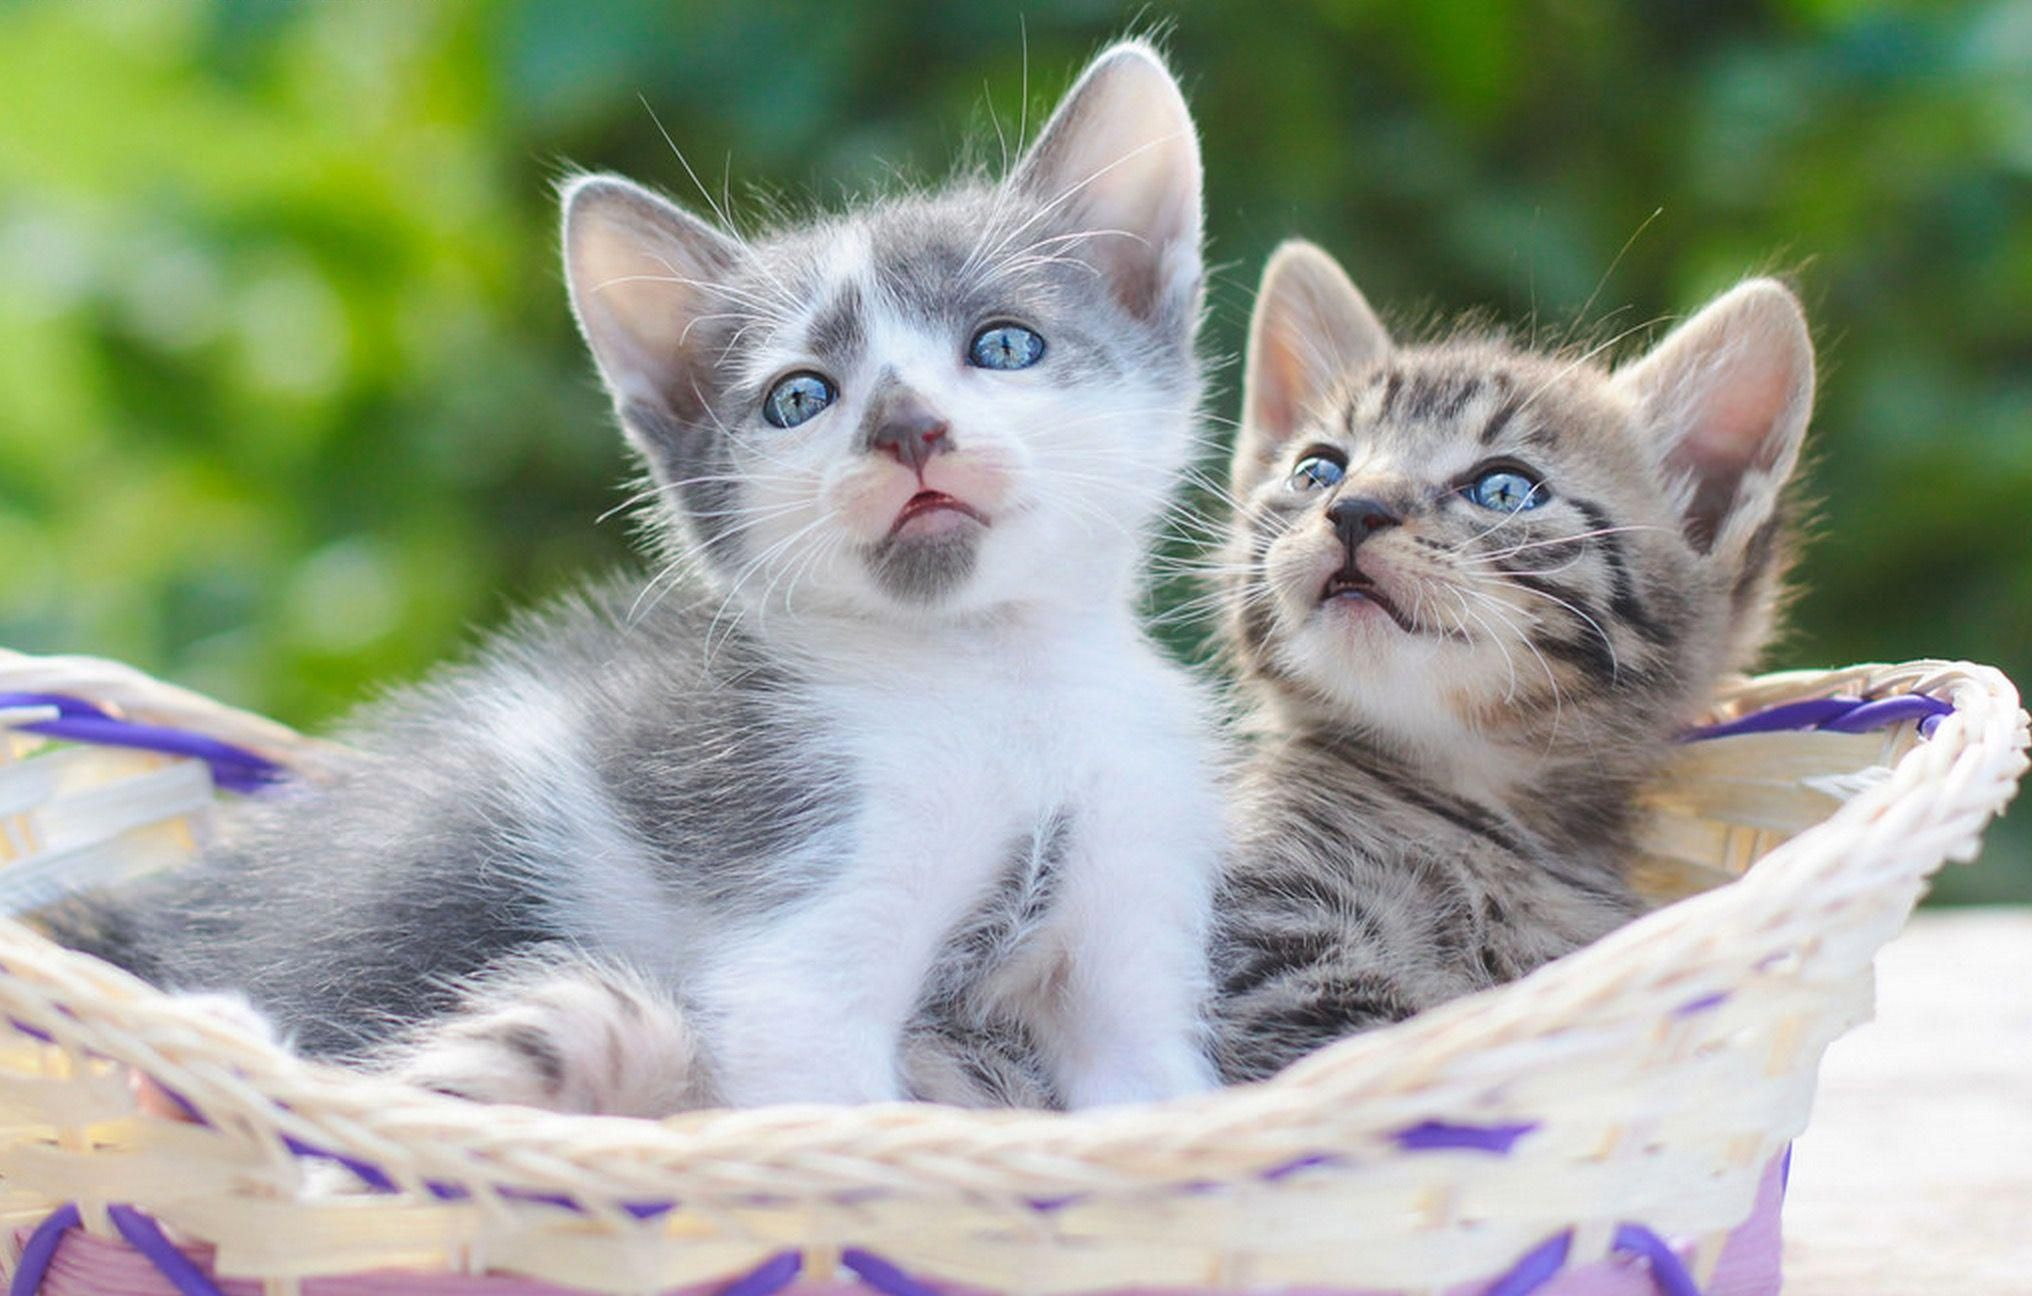 Pin on Adorable kittens